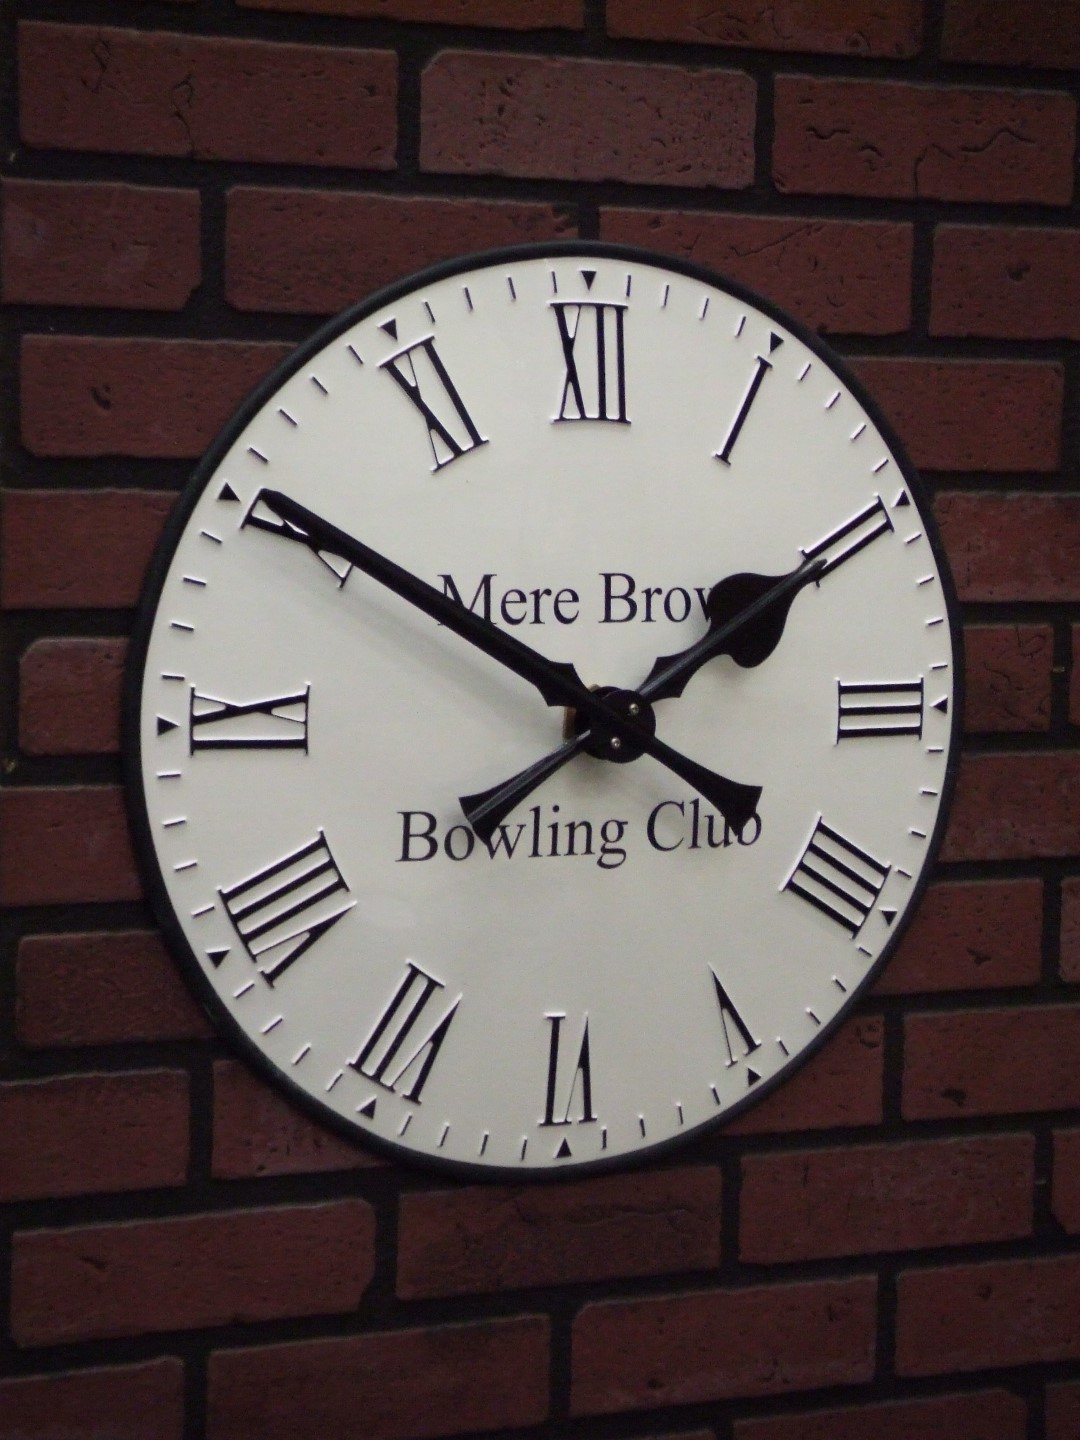 Bowling Club clock with signwriting